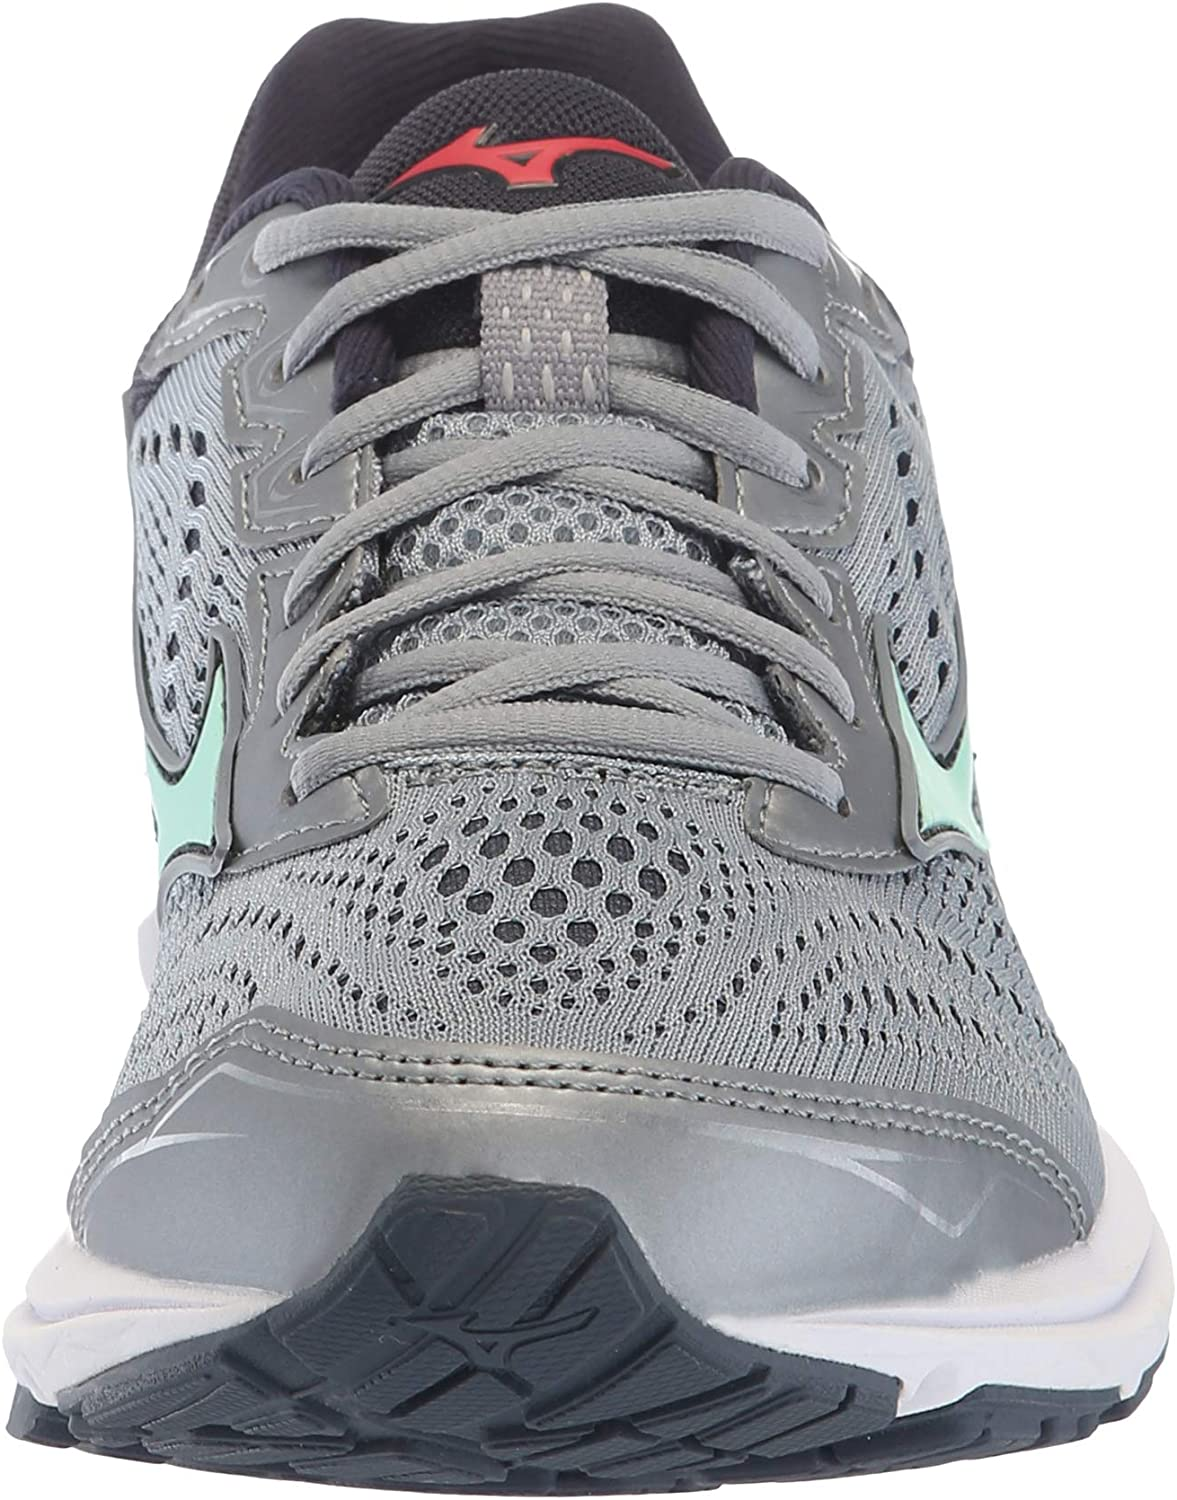 Sneakers Basses Femme Mizuno Wave Rider 22